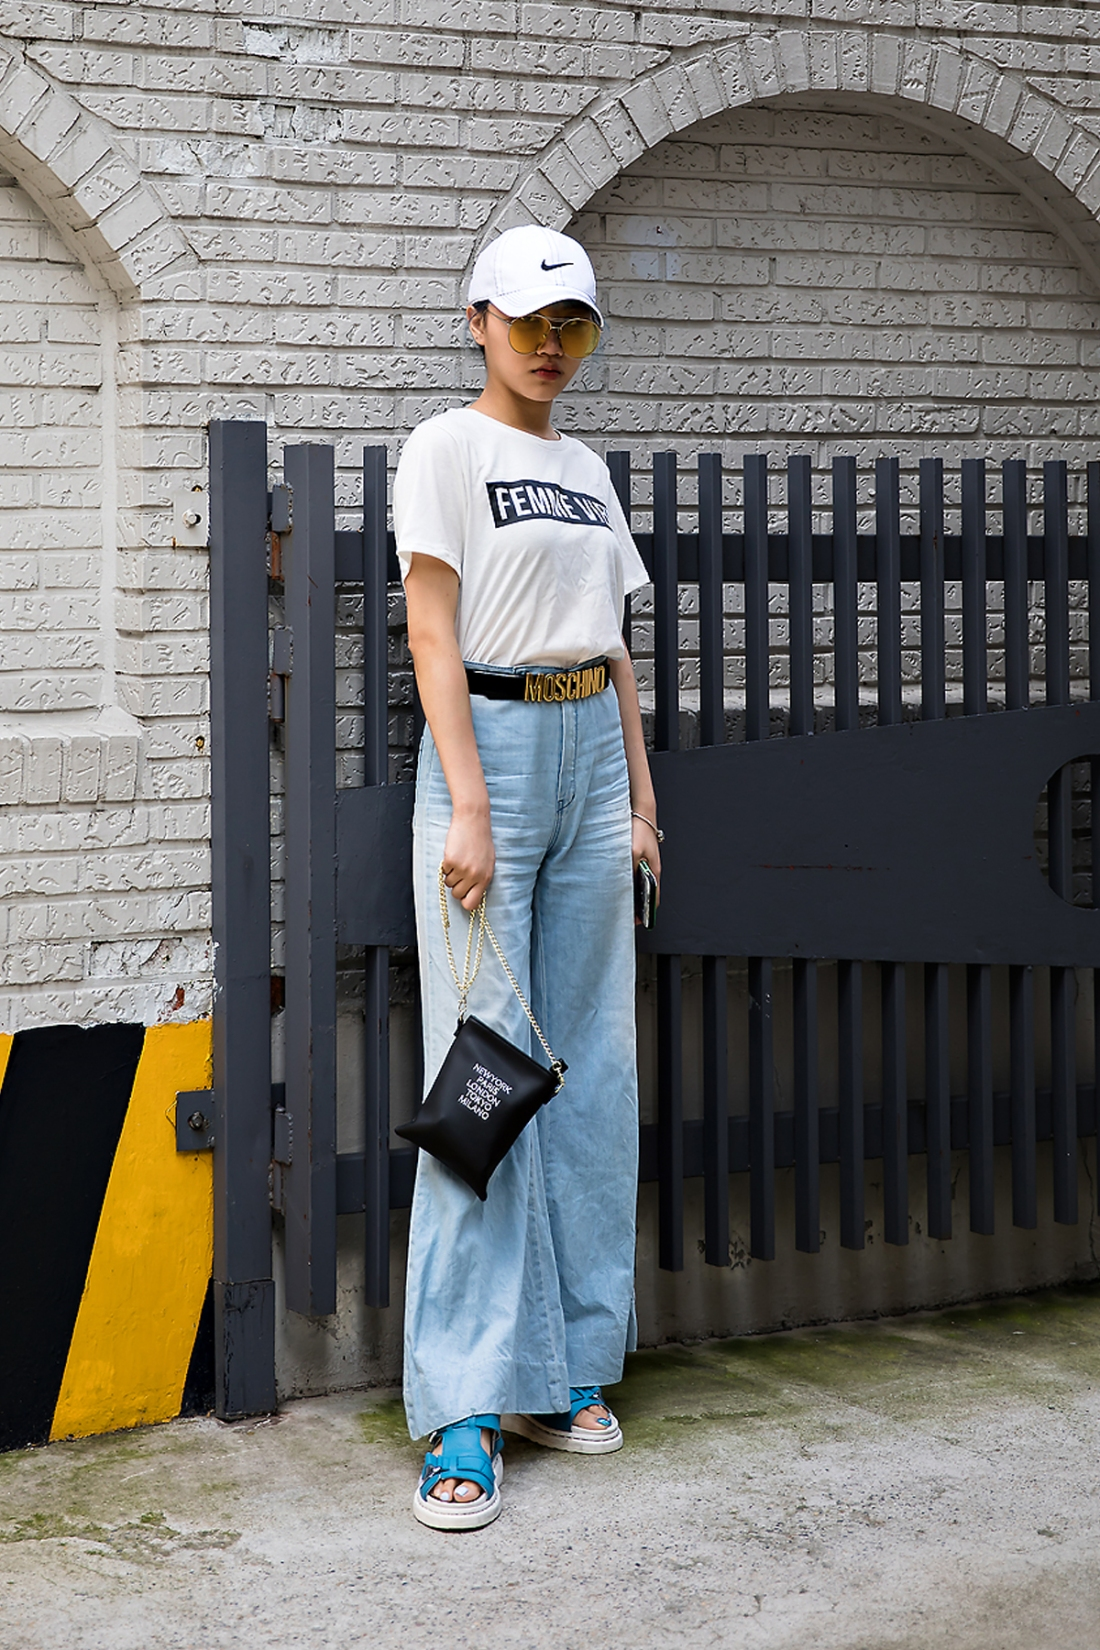 TS, Street Fashion 2017 in Seoul.jpg